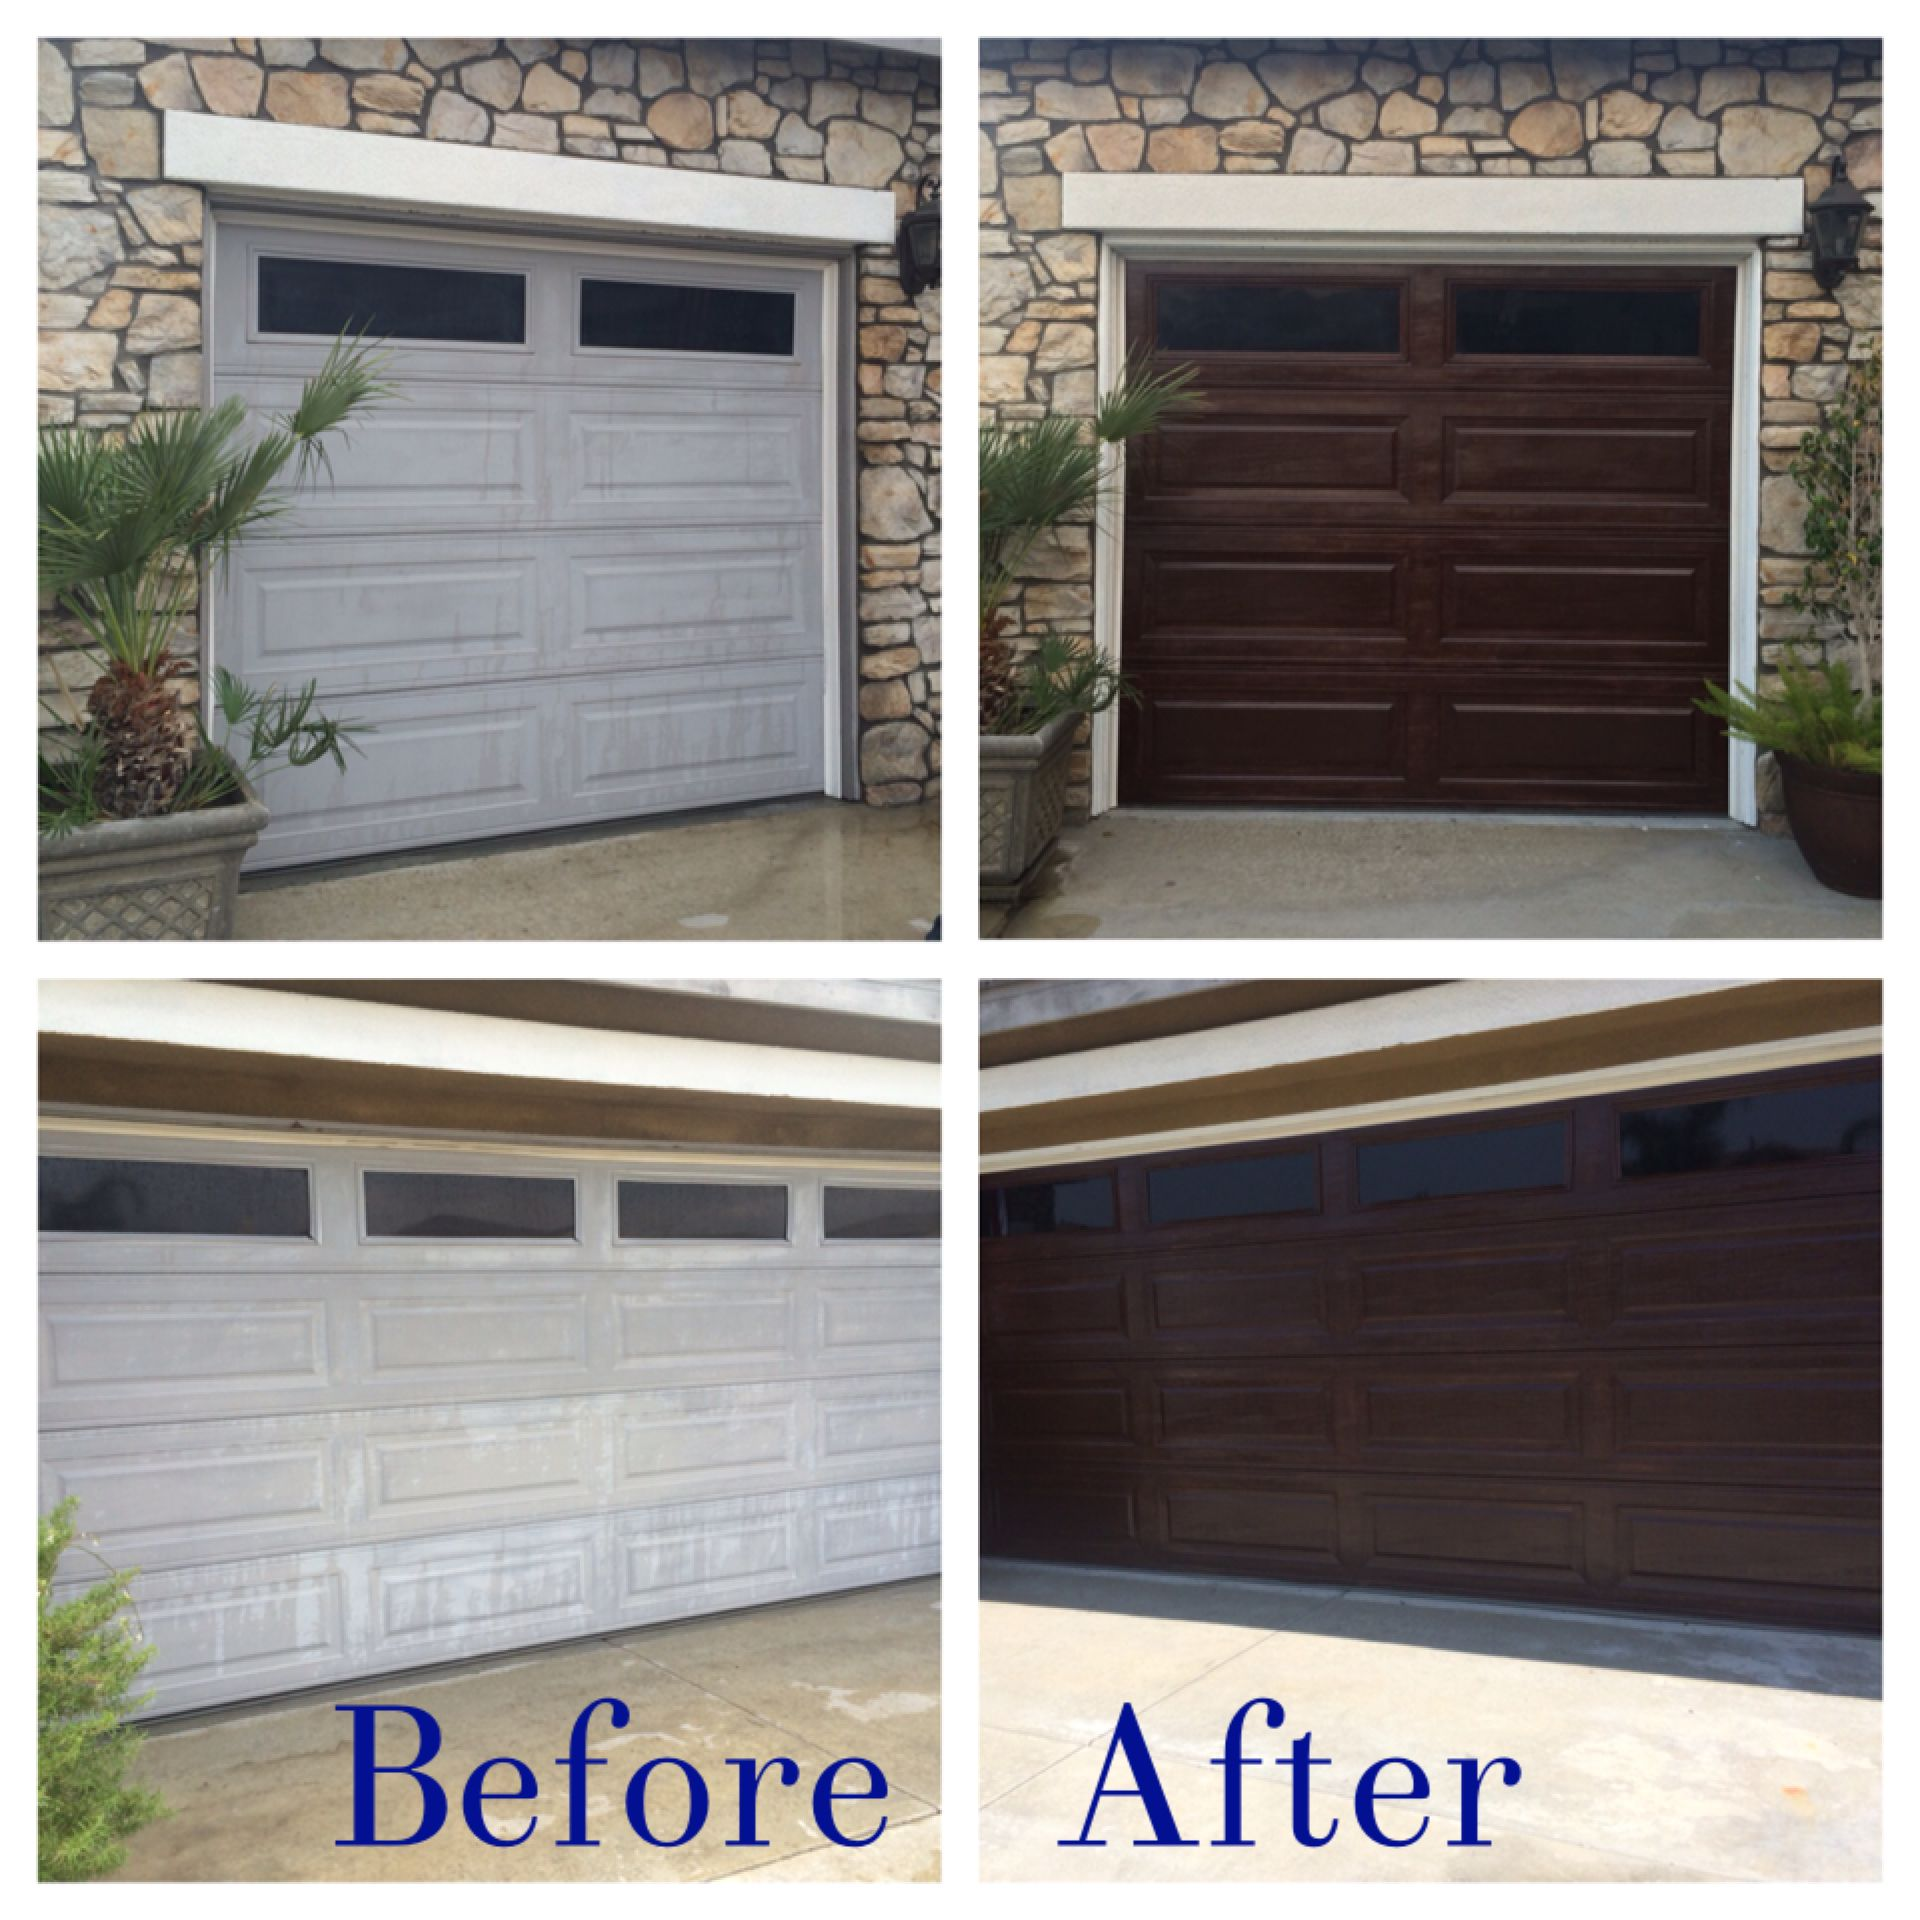 Diy Garage Door Makeover Using Minwax Gel Stain In Hickory Garage Door Paint Garage Door Colors Diy Garage Door